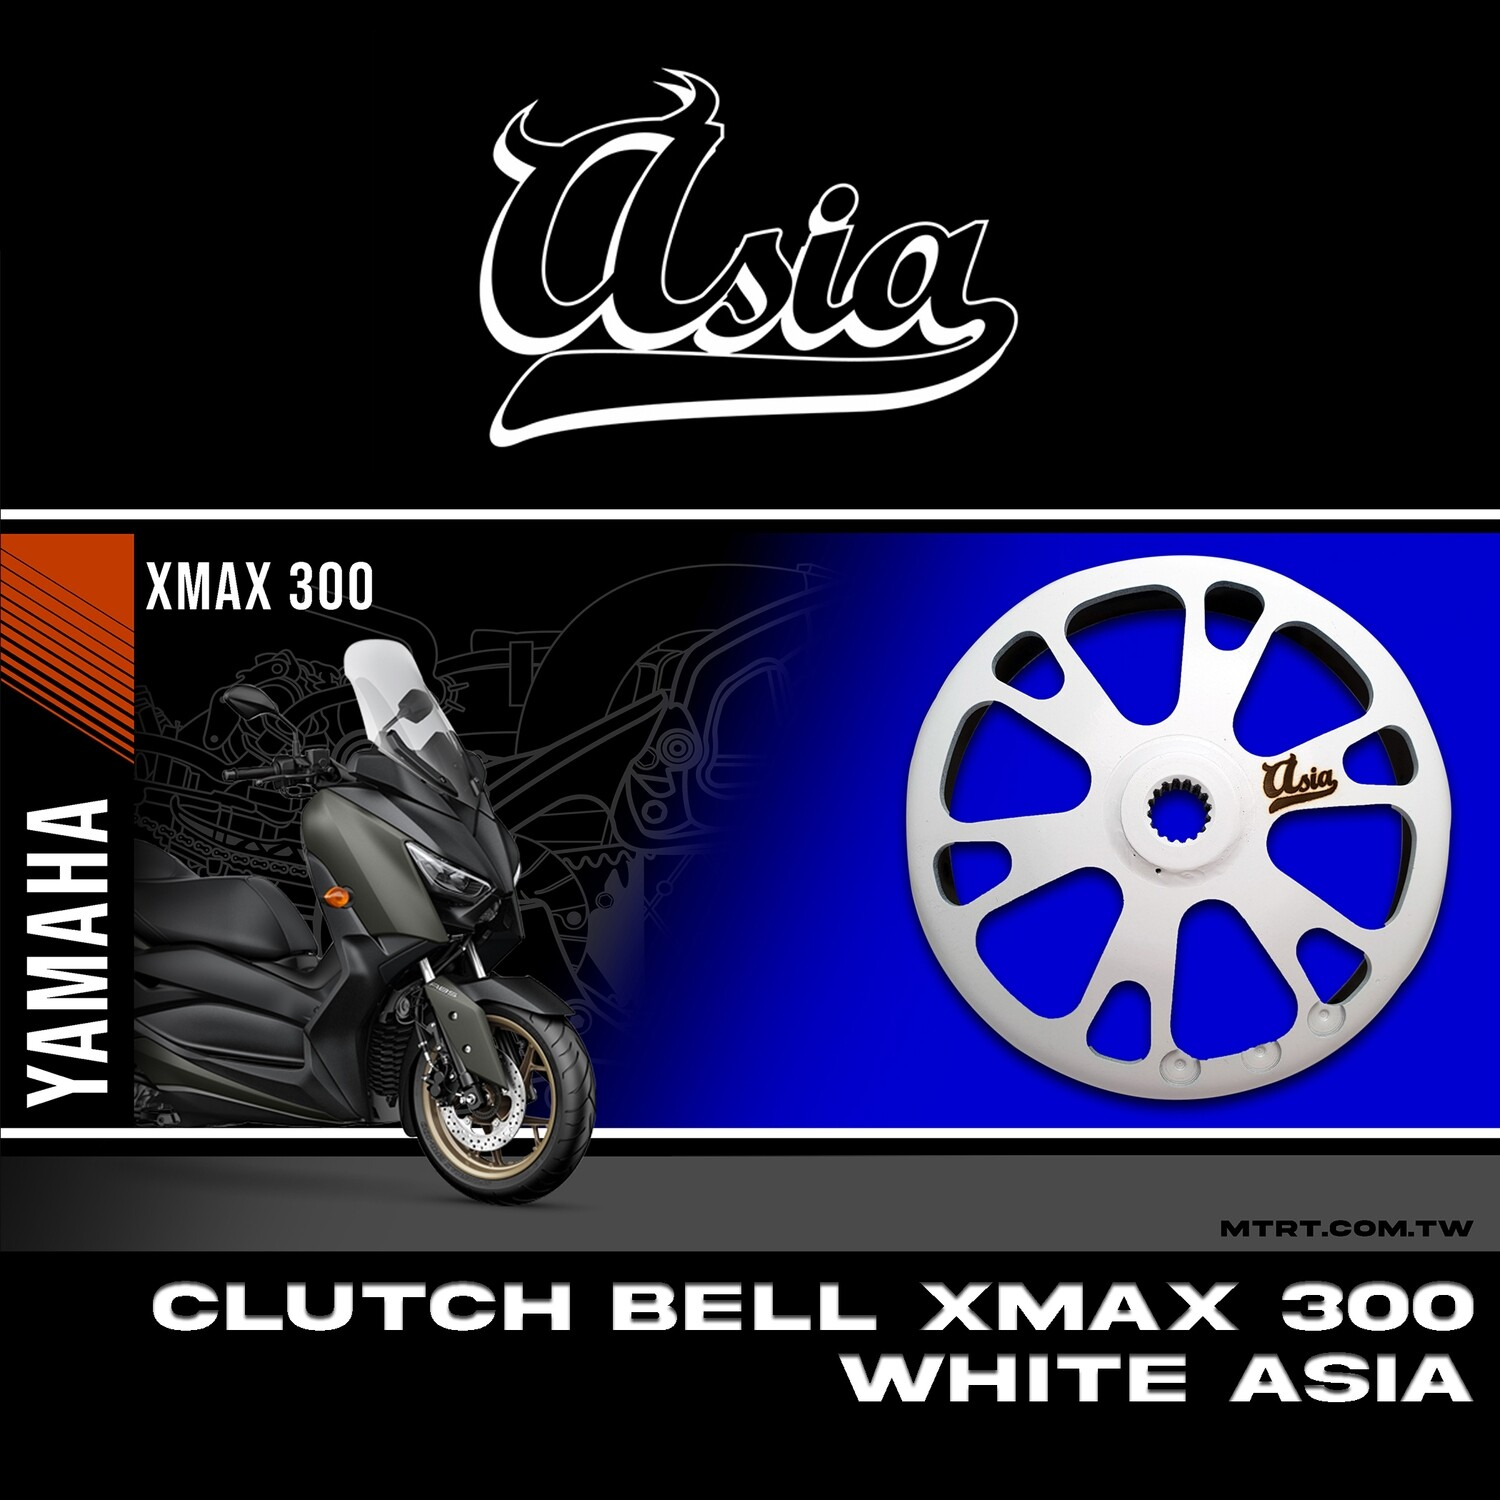 CLUTCH BELL XMAX300 WHITE ASIA